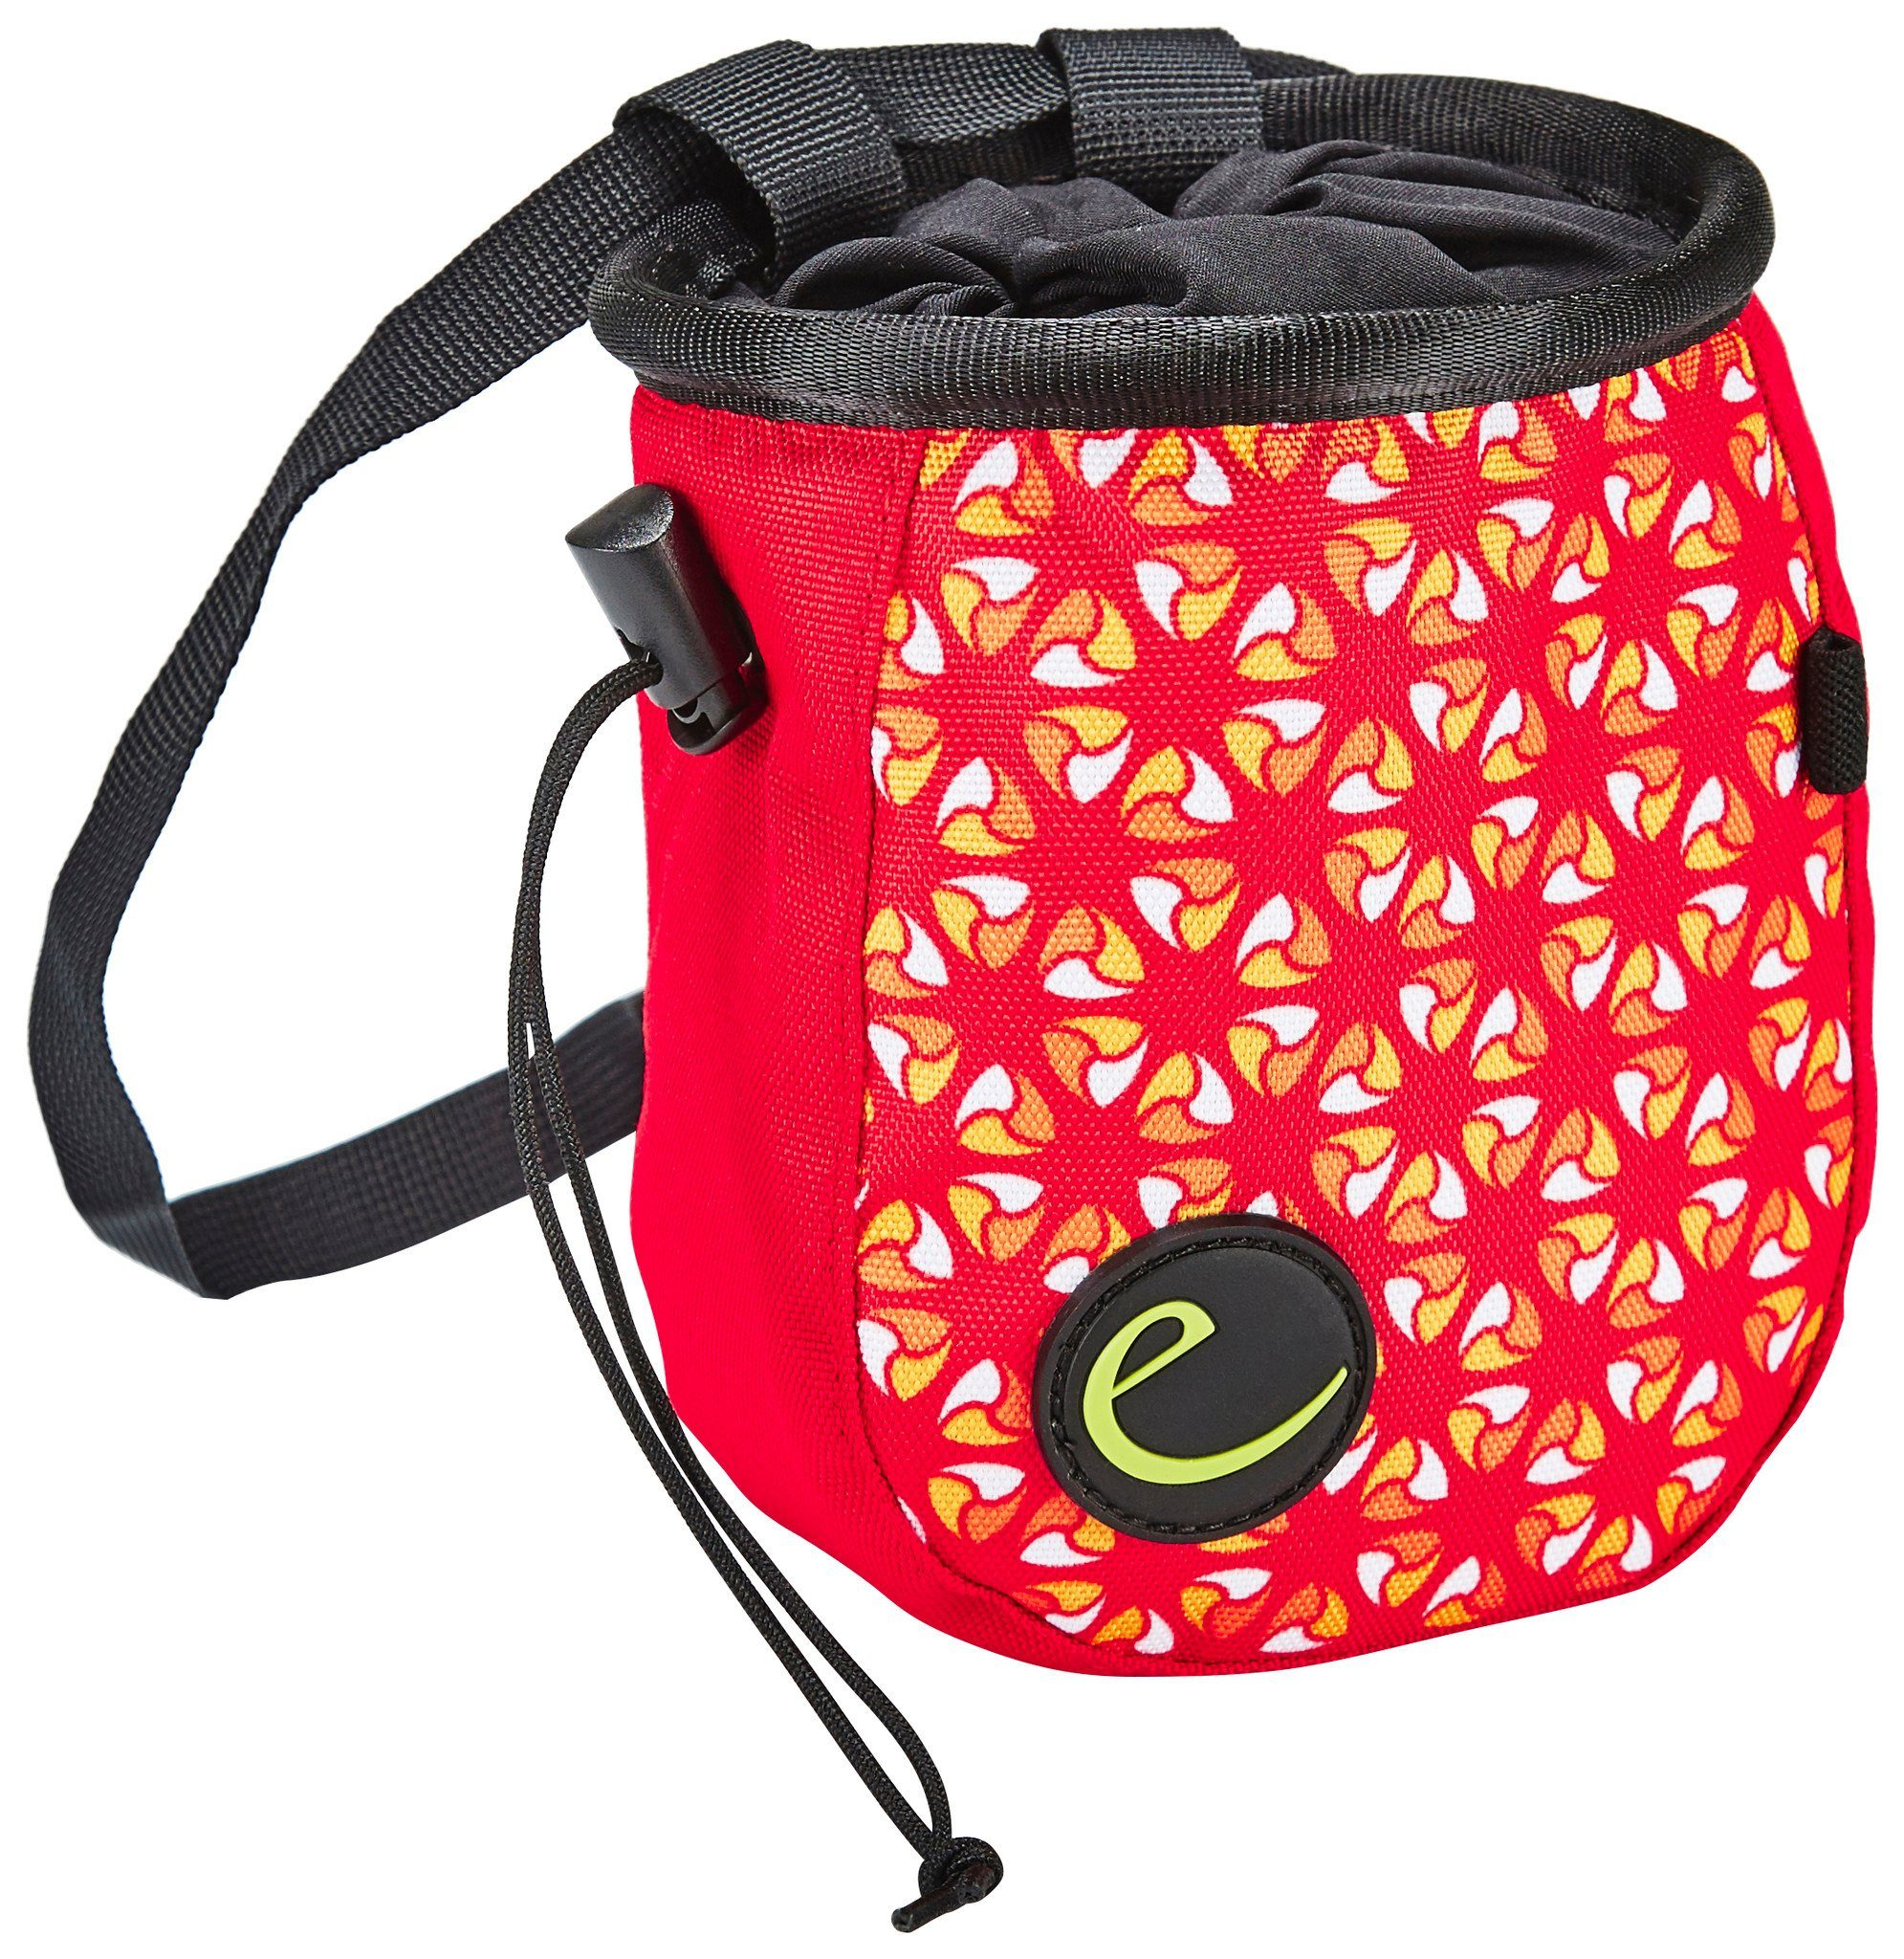 Edelrid Outdoor-Equipment »Cosmic Chalk Bag Lady«